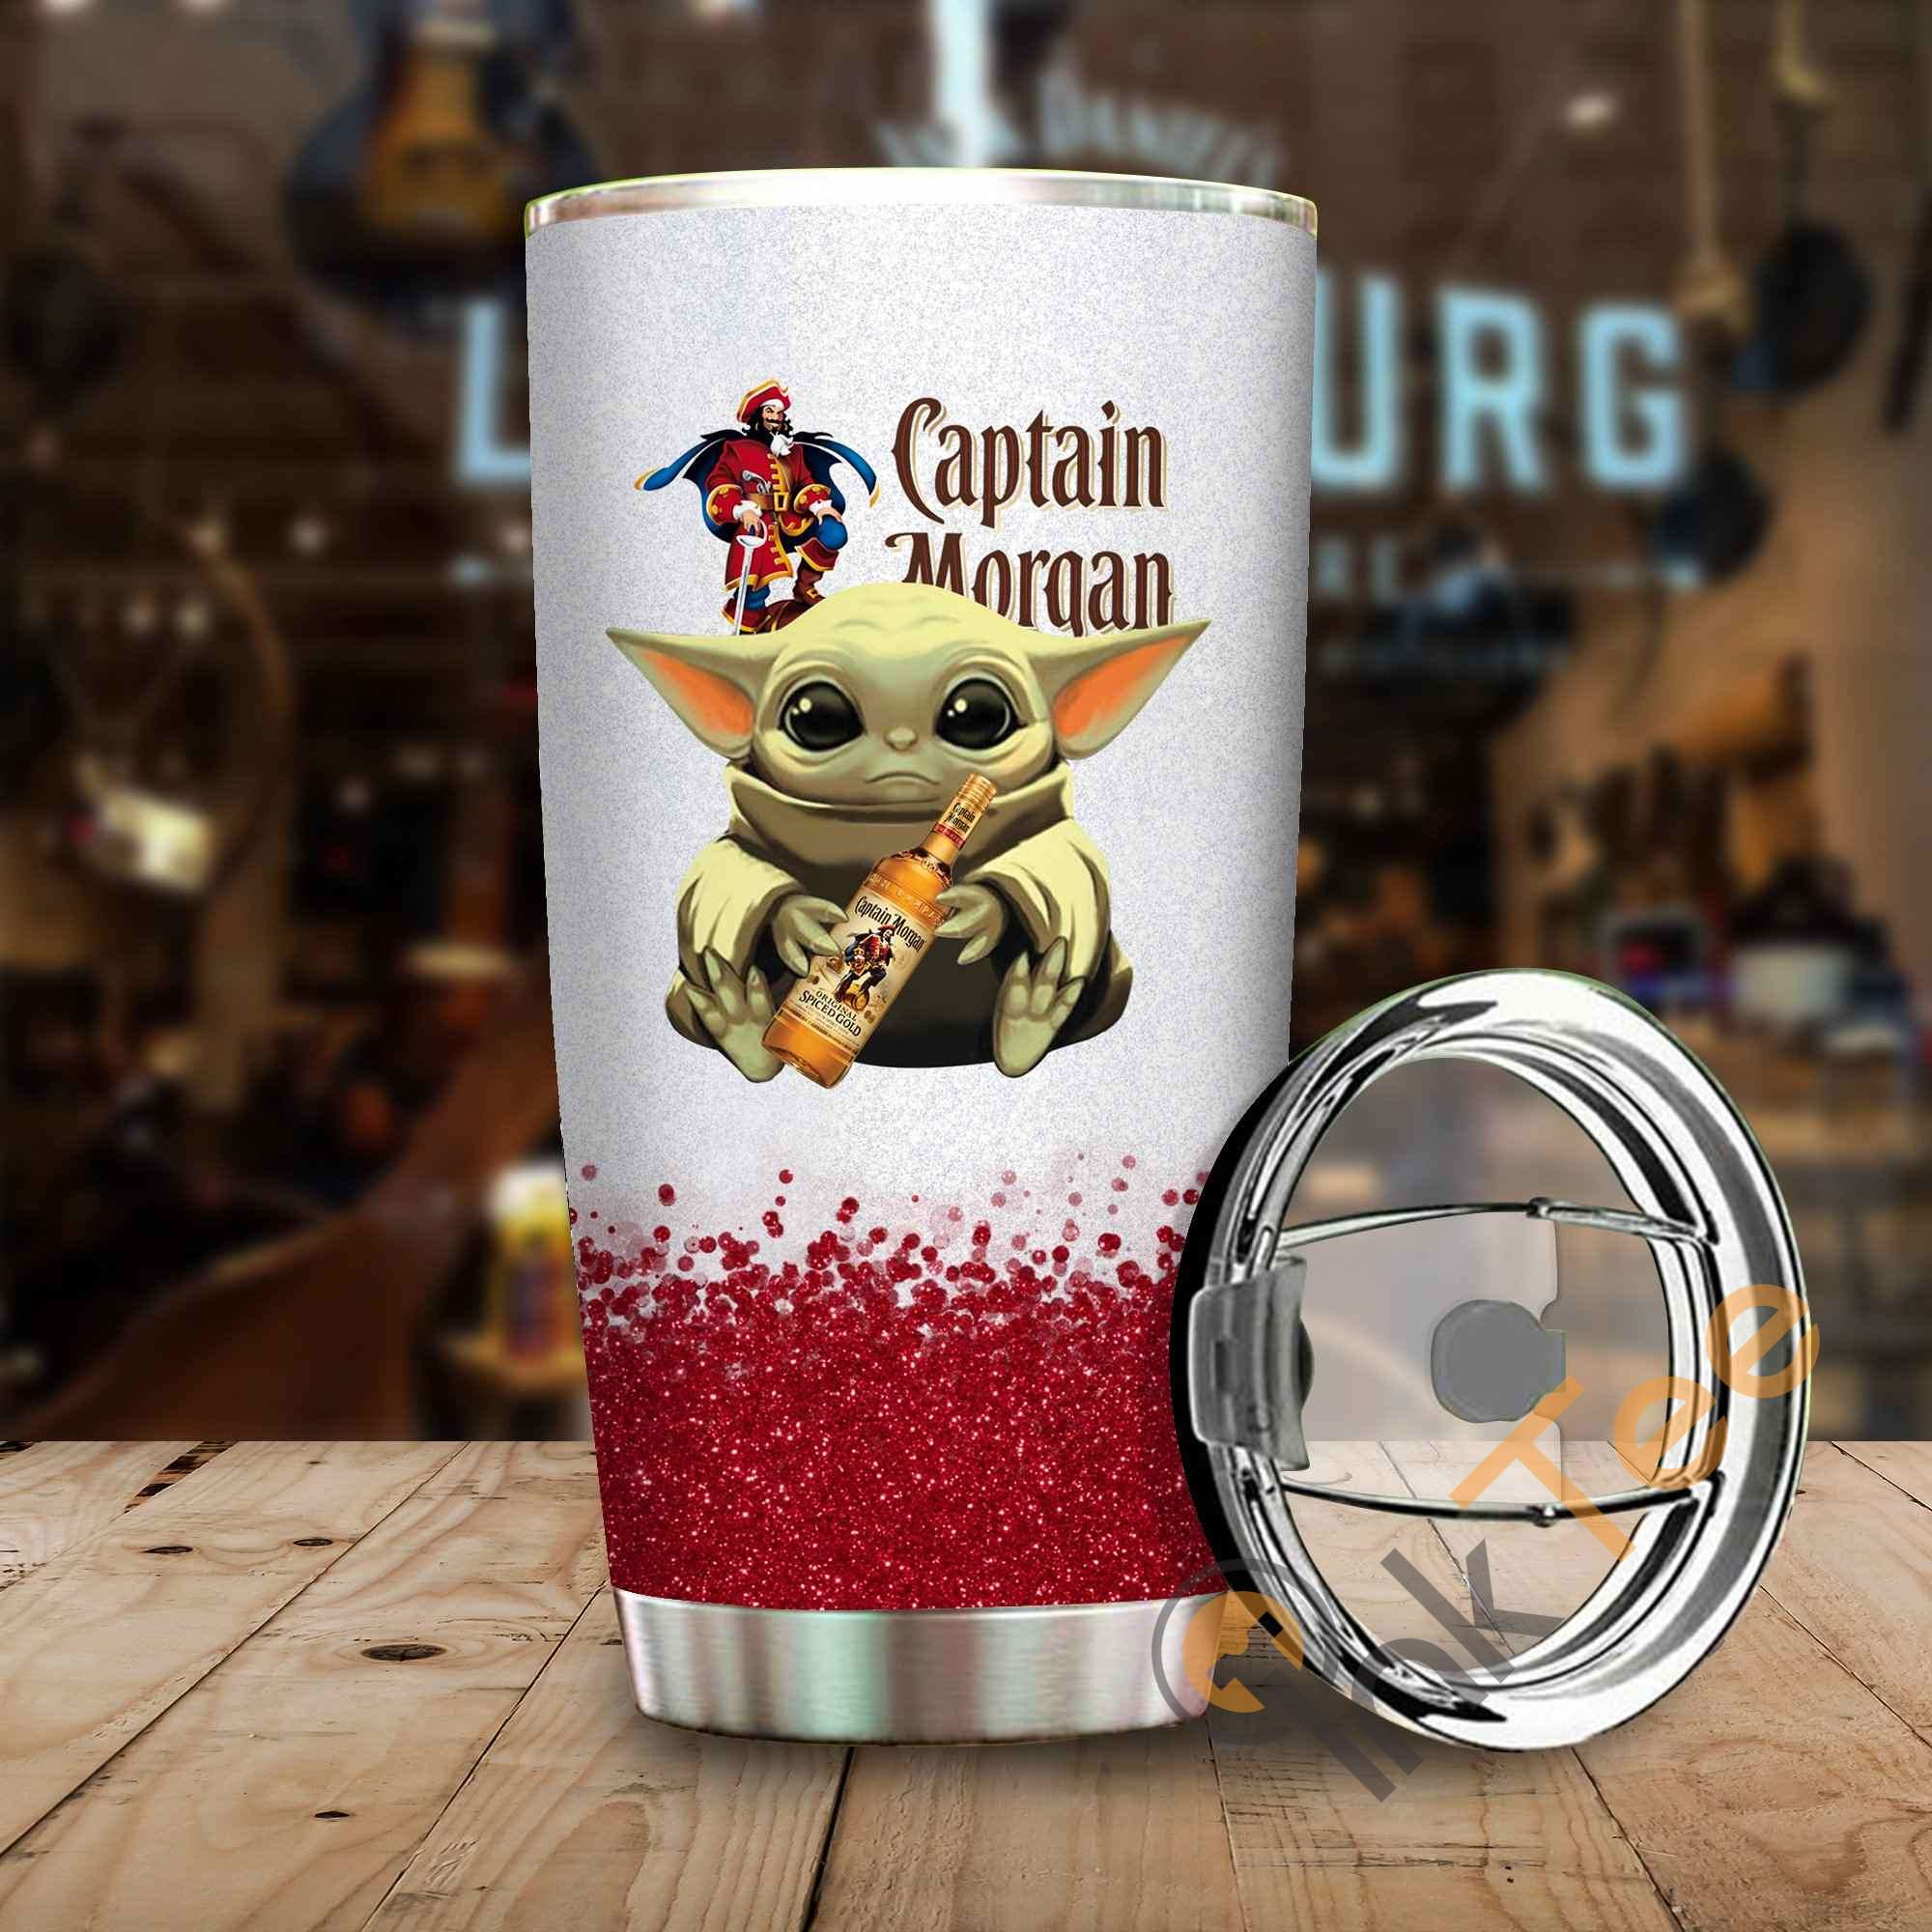 Baby Yoda Hold Captain Morgan Amazon Best Seller Sku 3948 Stainless Steel Tumbler